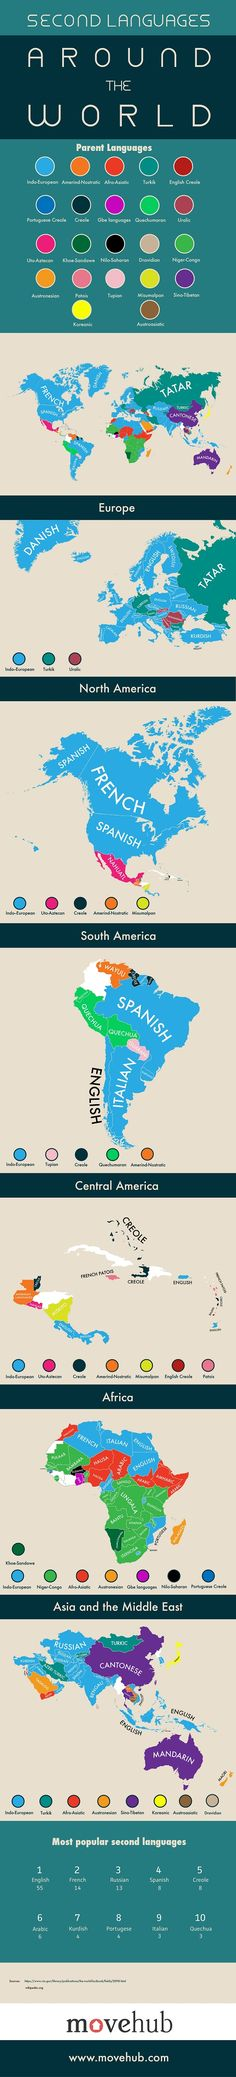 Interesting Map of Second Languages - MoveHub